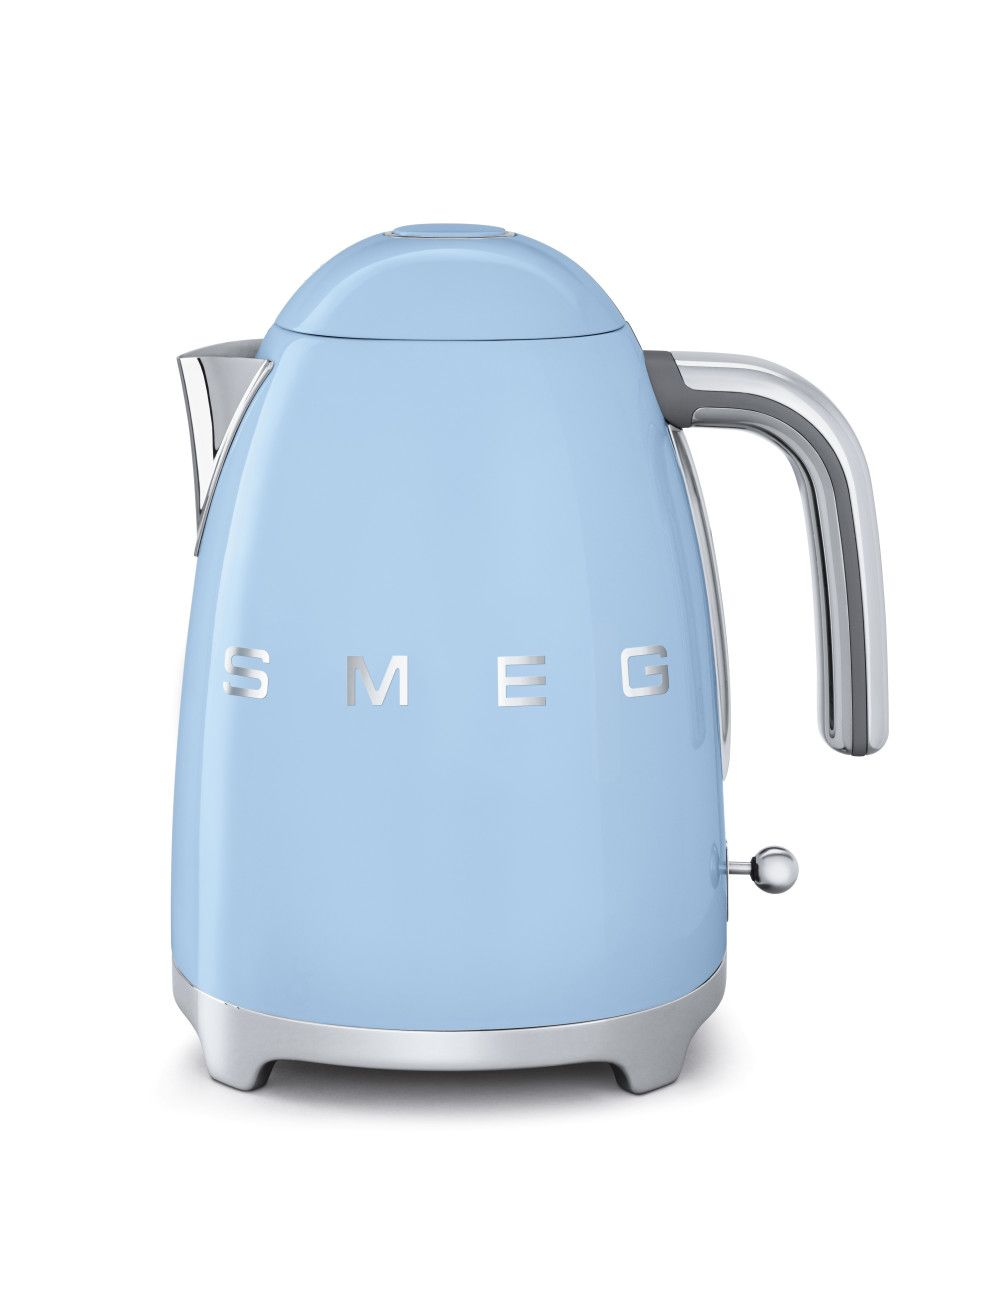 Add A Retro Touch To Your Kitchen With The Smeg Kettle In Pastel Blue.